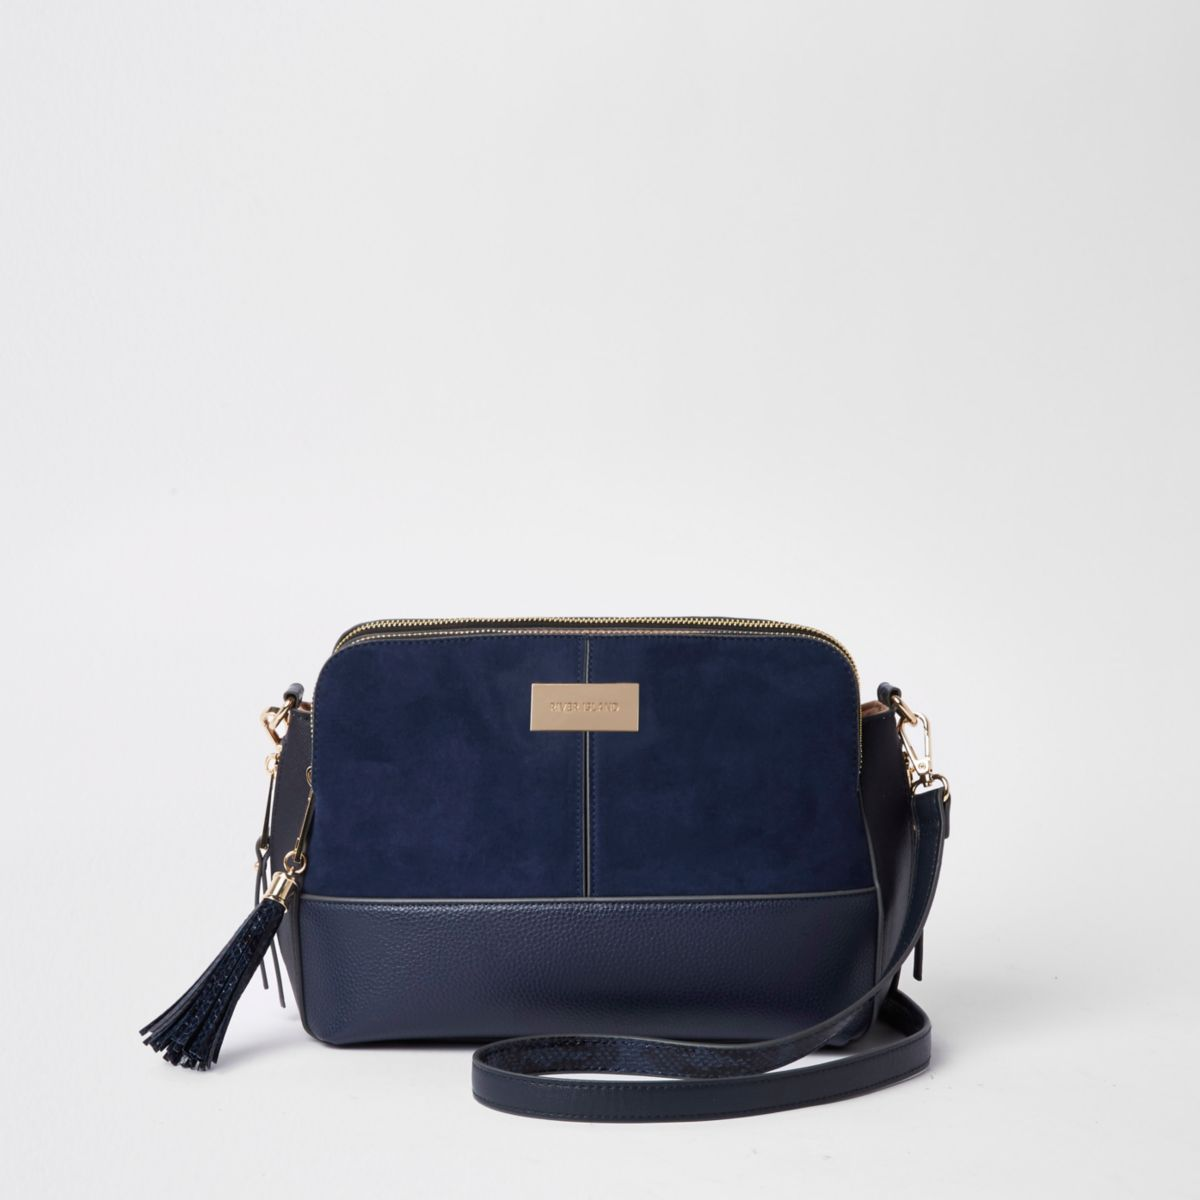 Navy triple compartment cross body bag